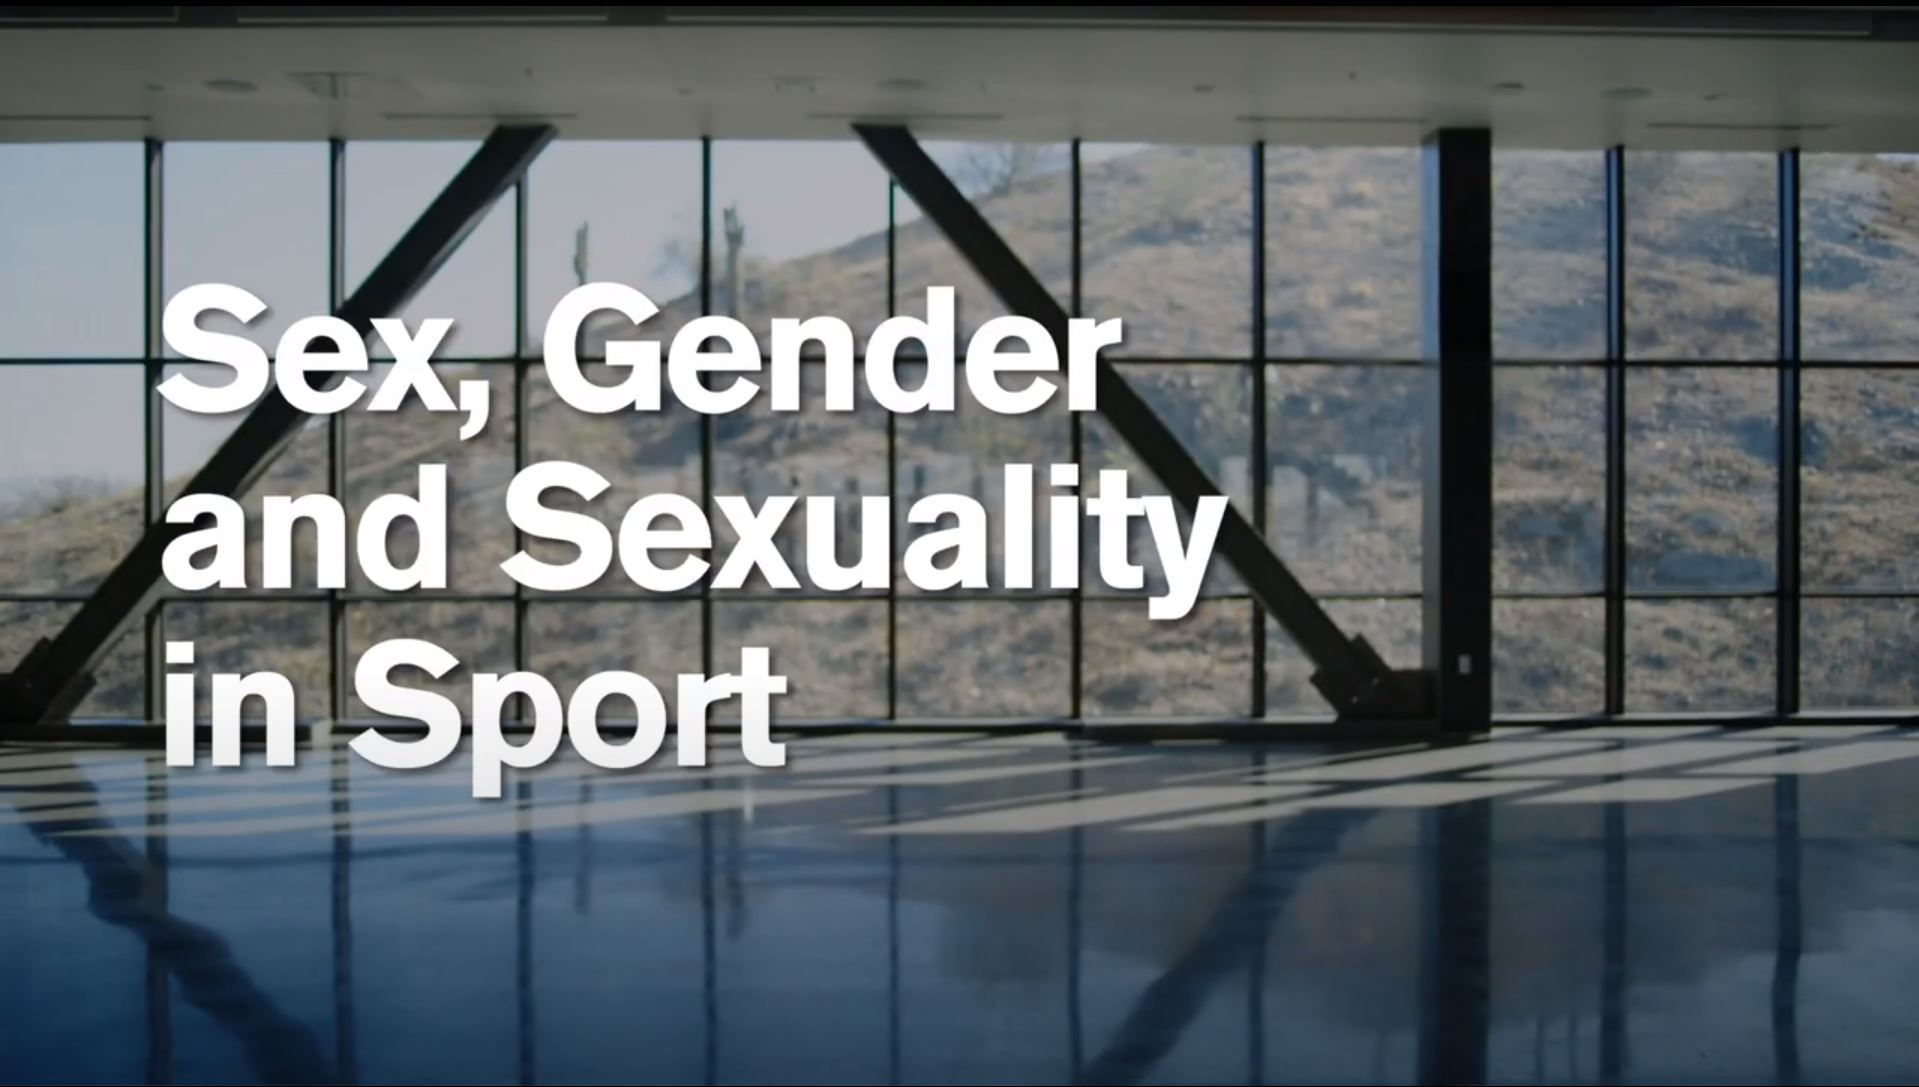 Sex, Gender and Sexuality in Sports